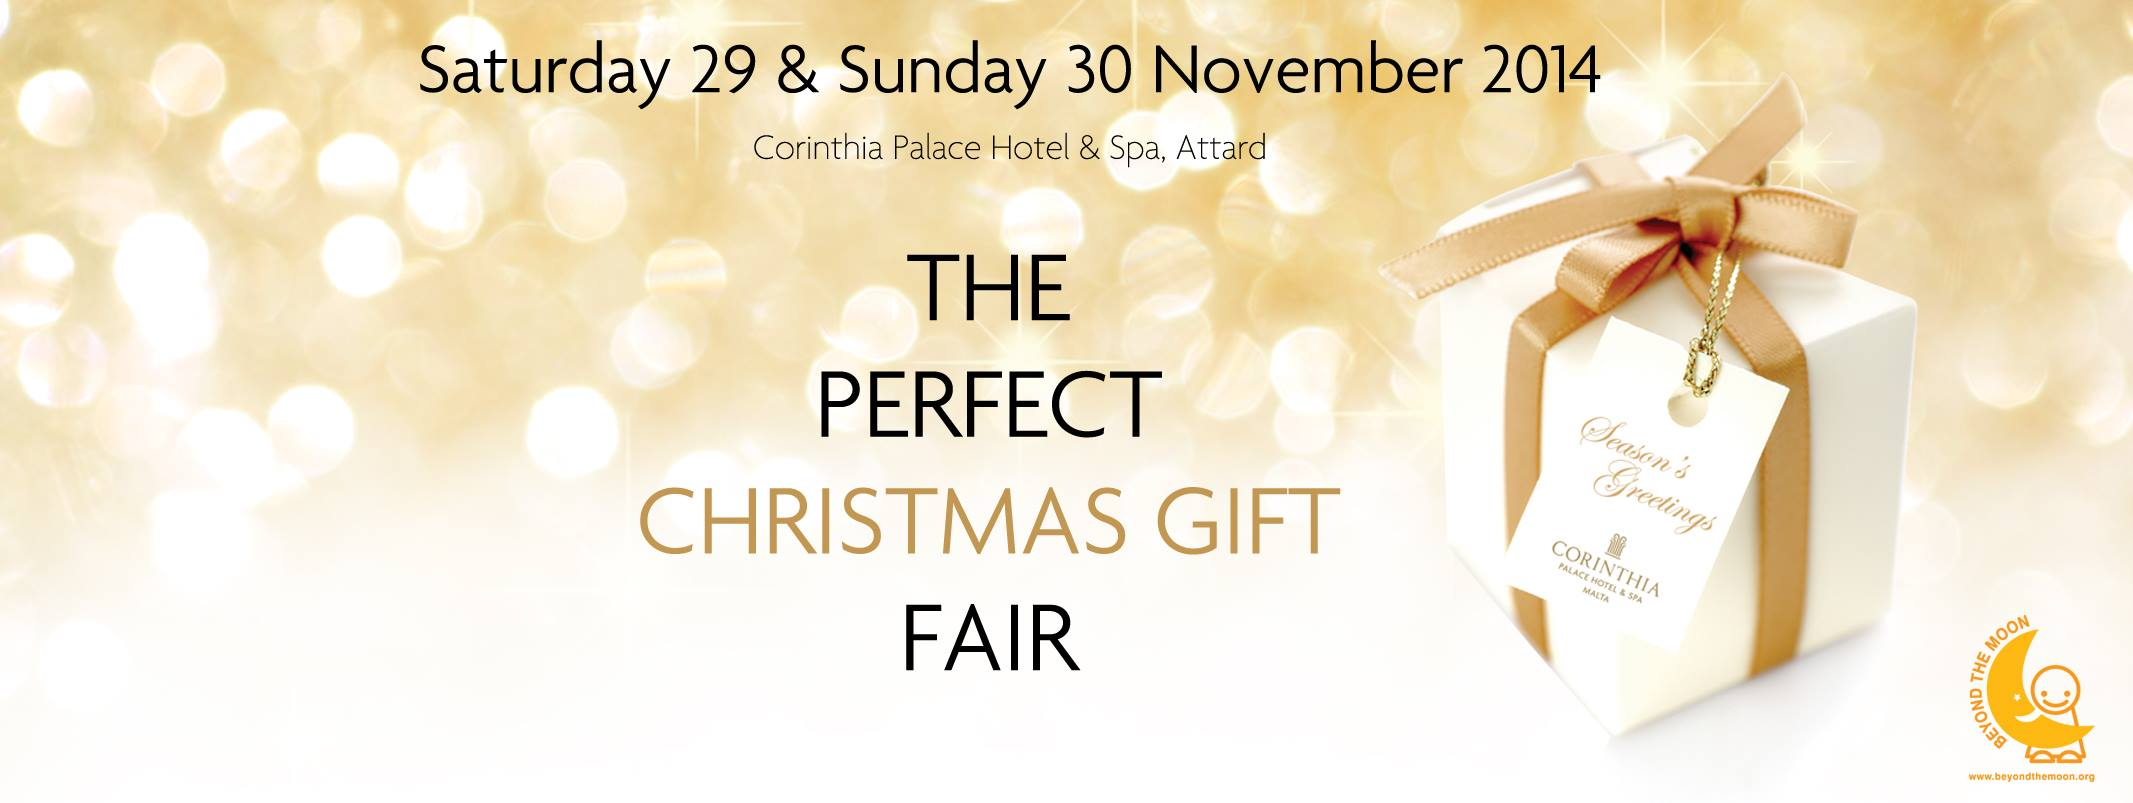 The Perfect Christmas Gift Fair Event Desirably Yours Malta